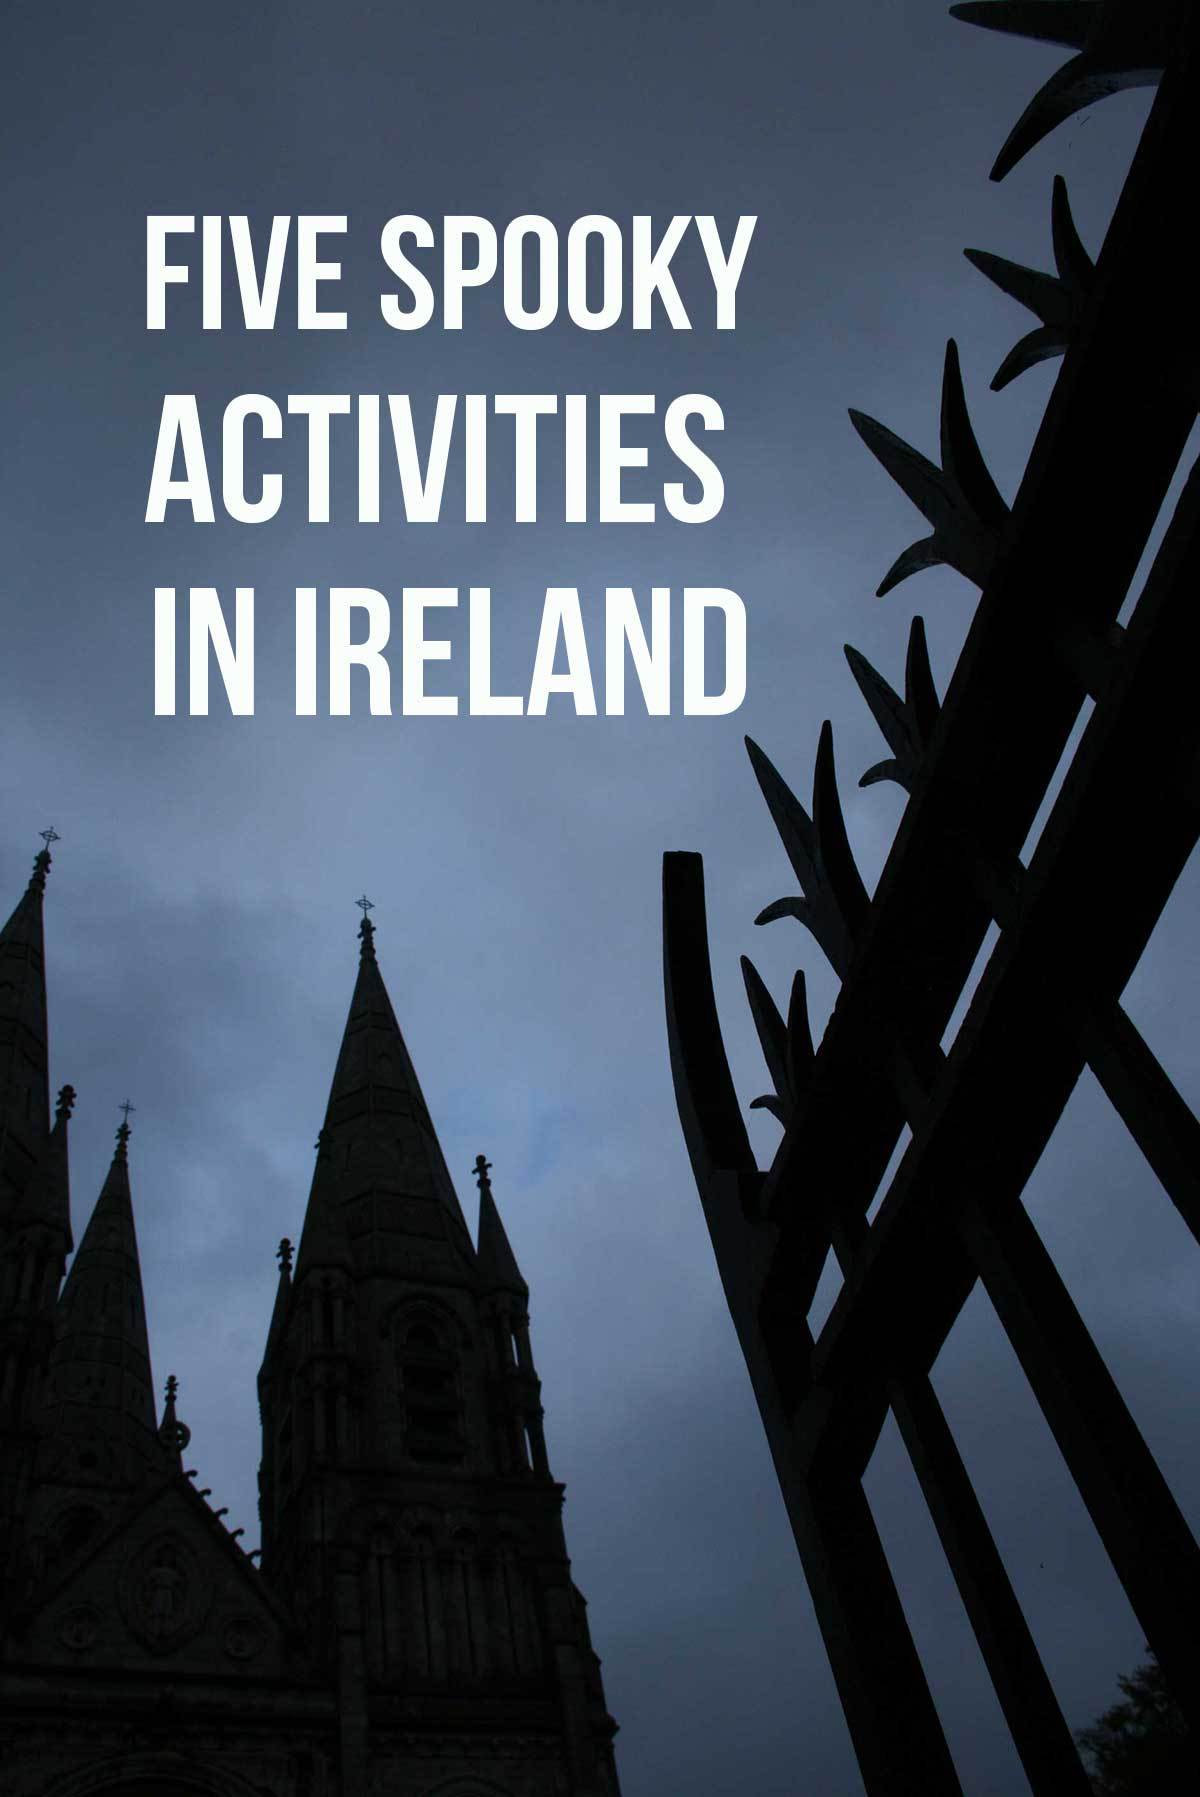 Five Spooky Activities in Ireland